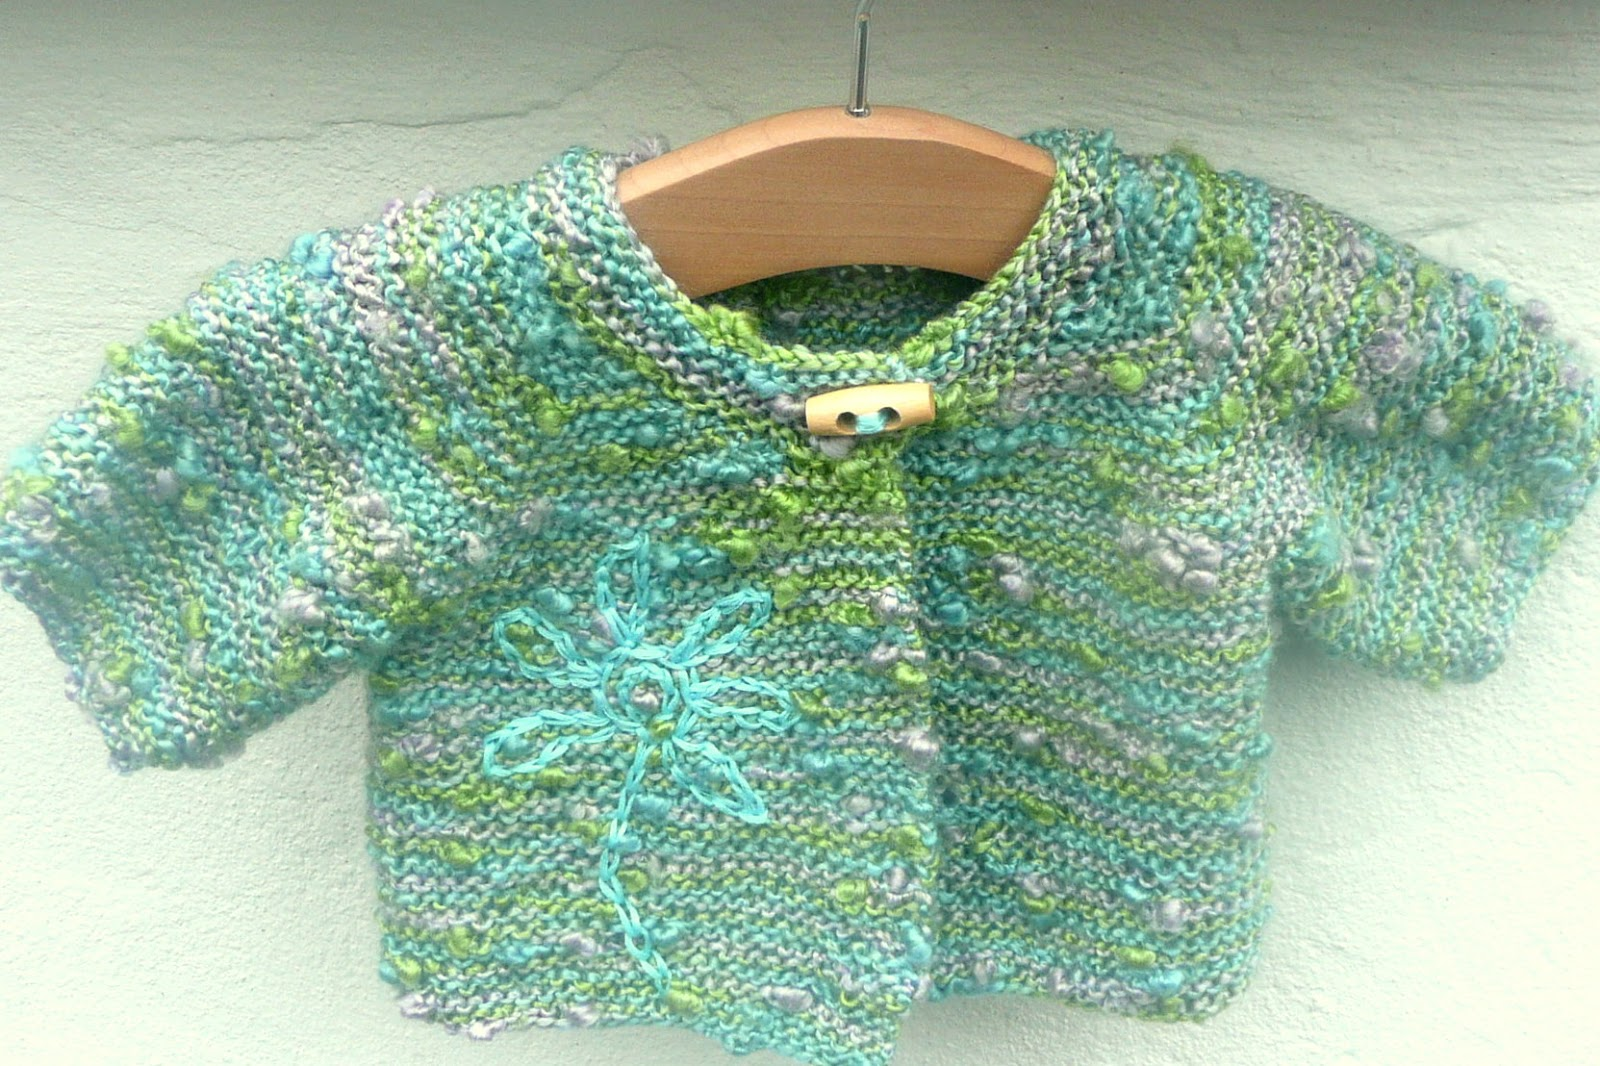 Knitting Pattern Child Jacket : Ceradka Crafts: Simple Seamless Baby Jacket - a free knitting pattern